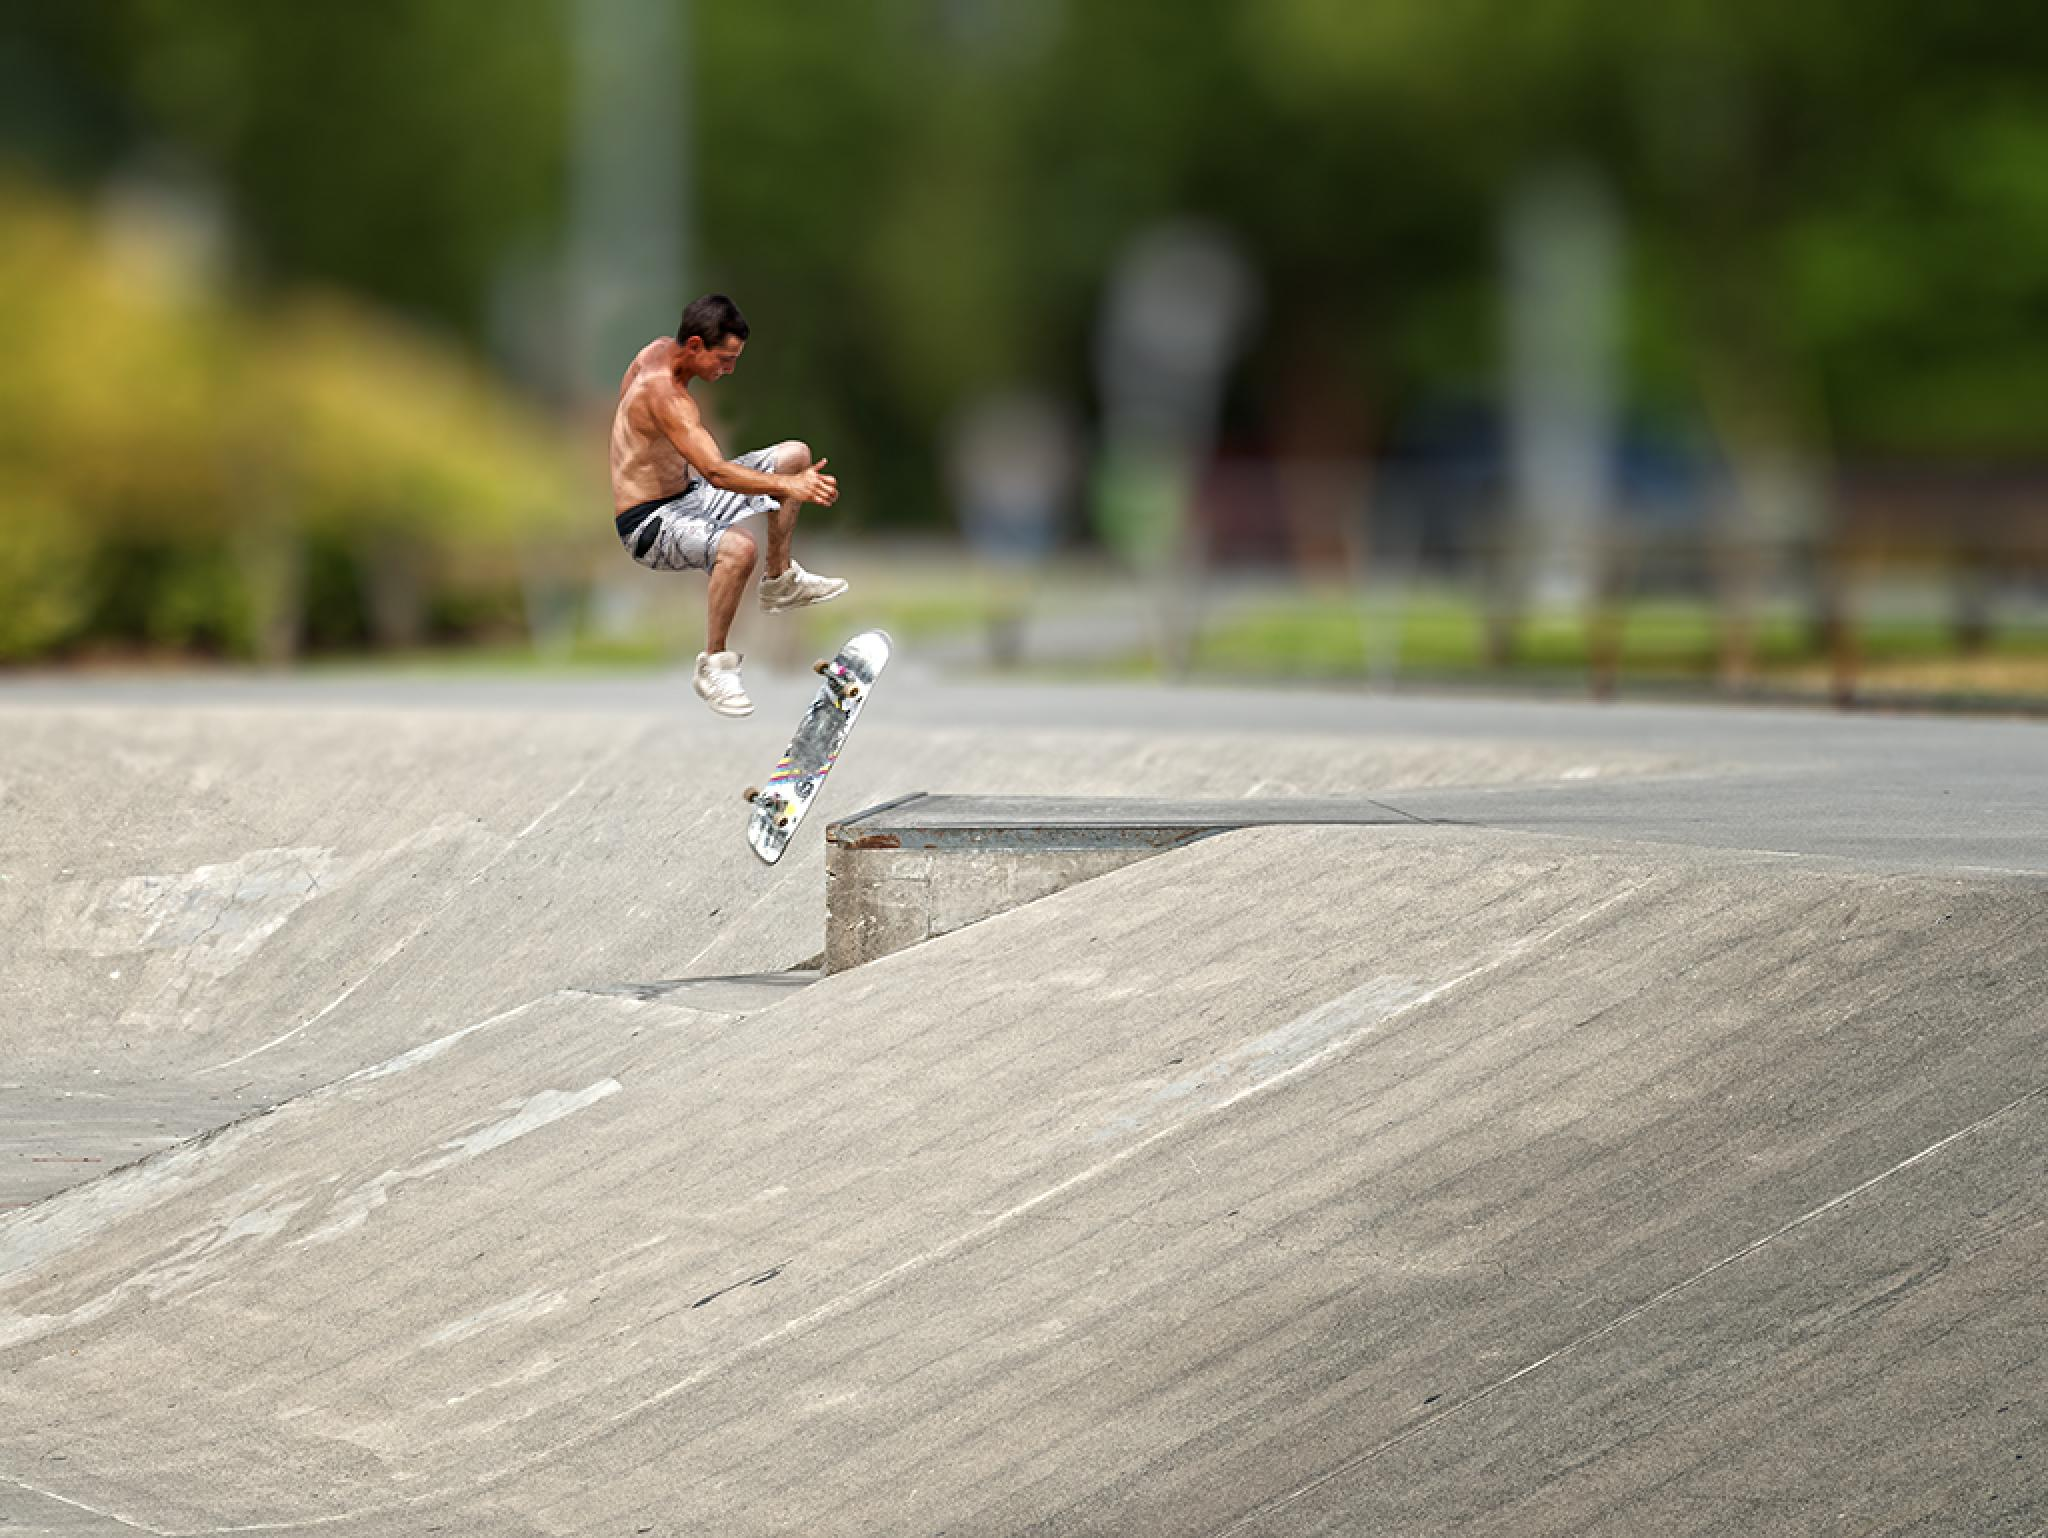 At the skate park by michael.krochta.3